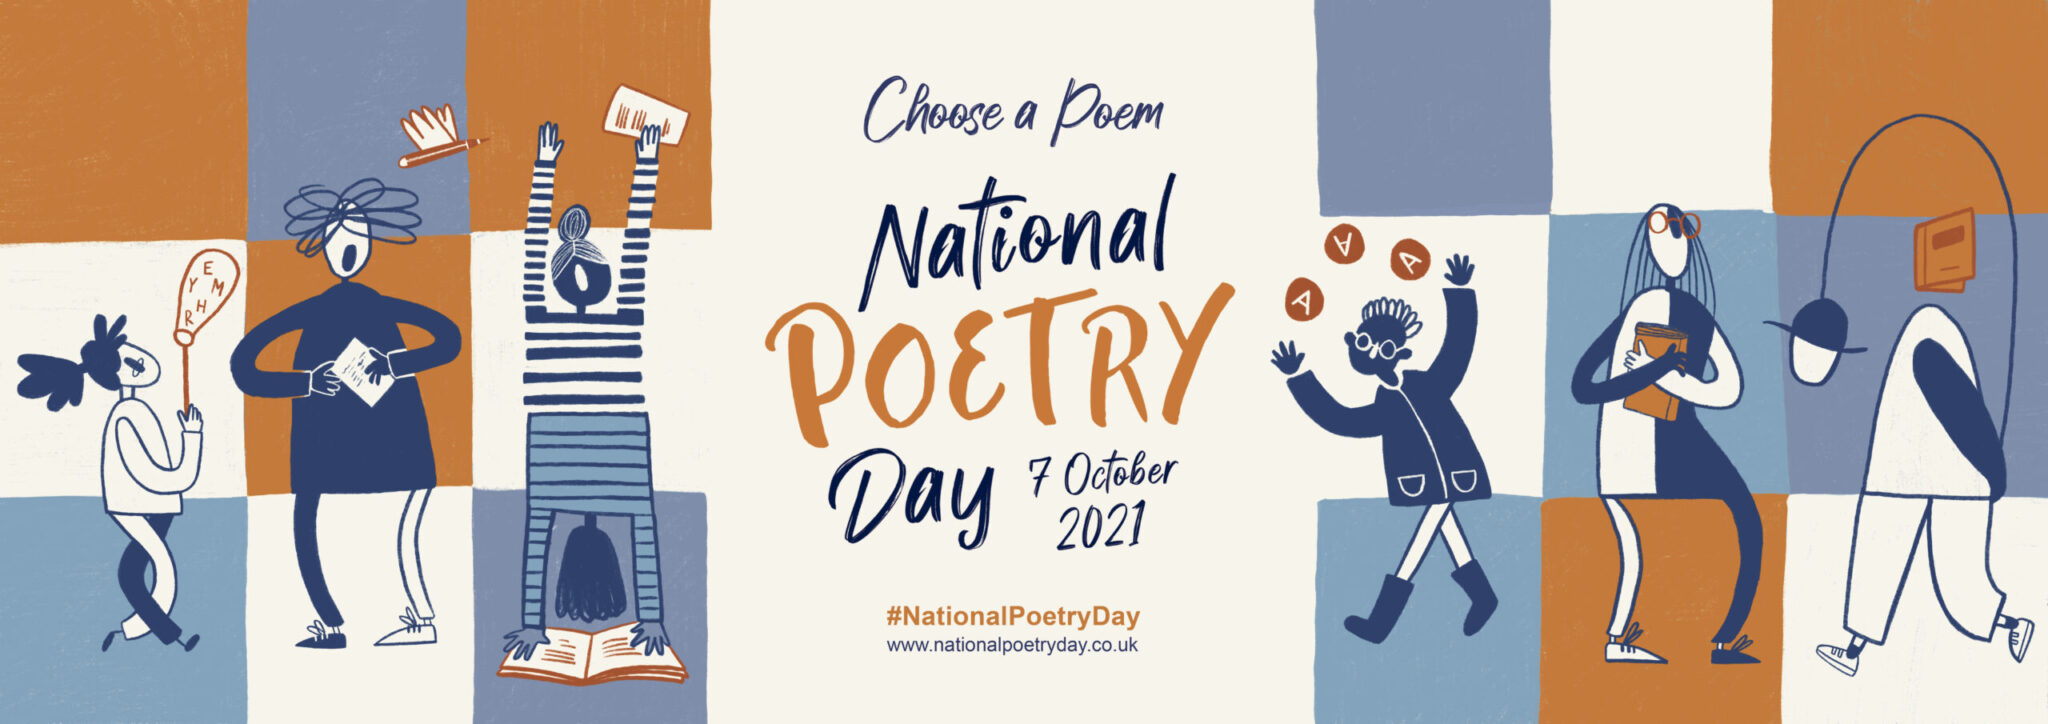 national poetry day image